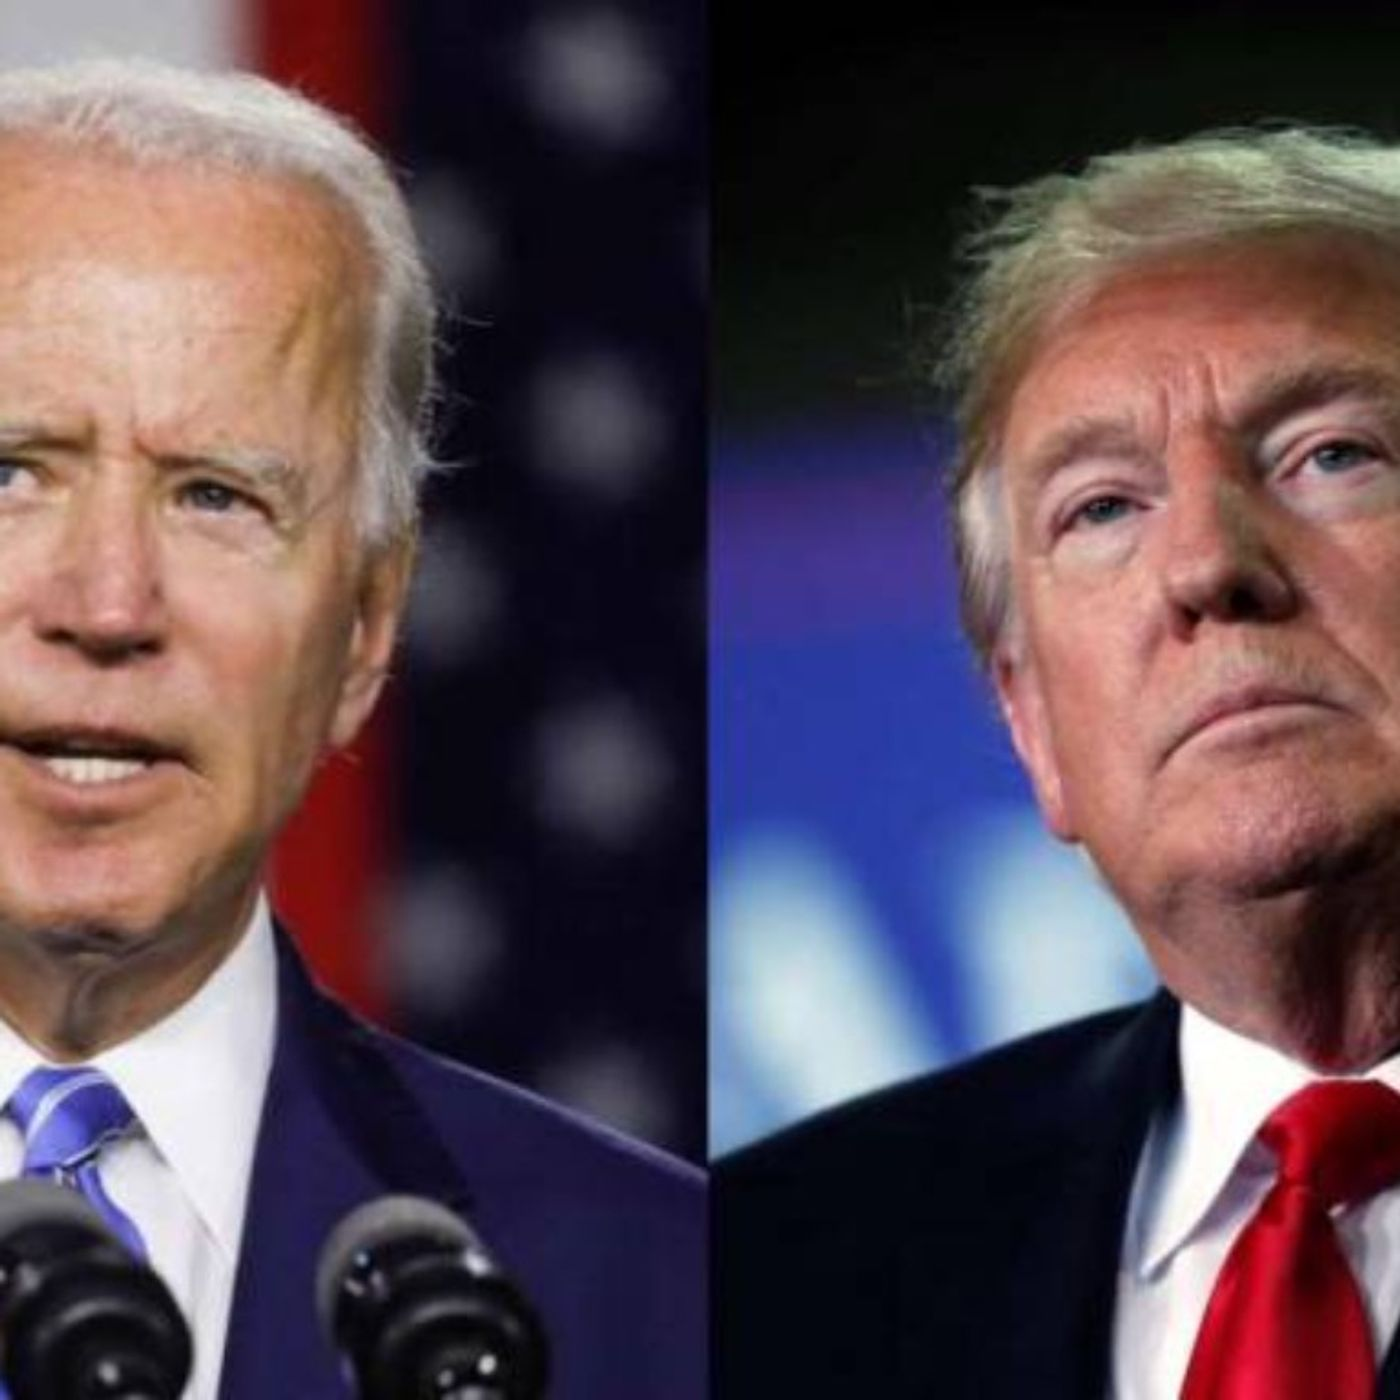 POLICY AND PRACTICE - What can we expect from the 2020 US presidential election?